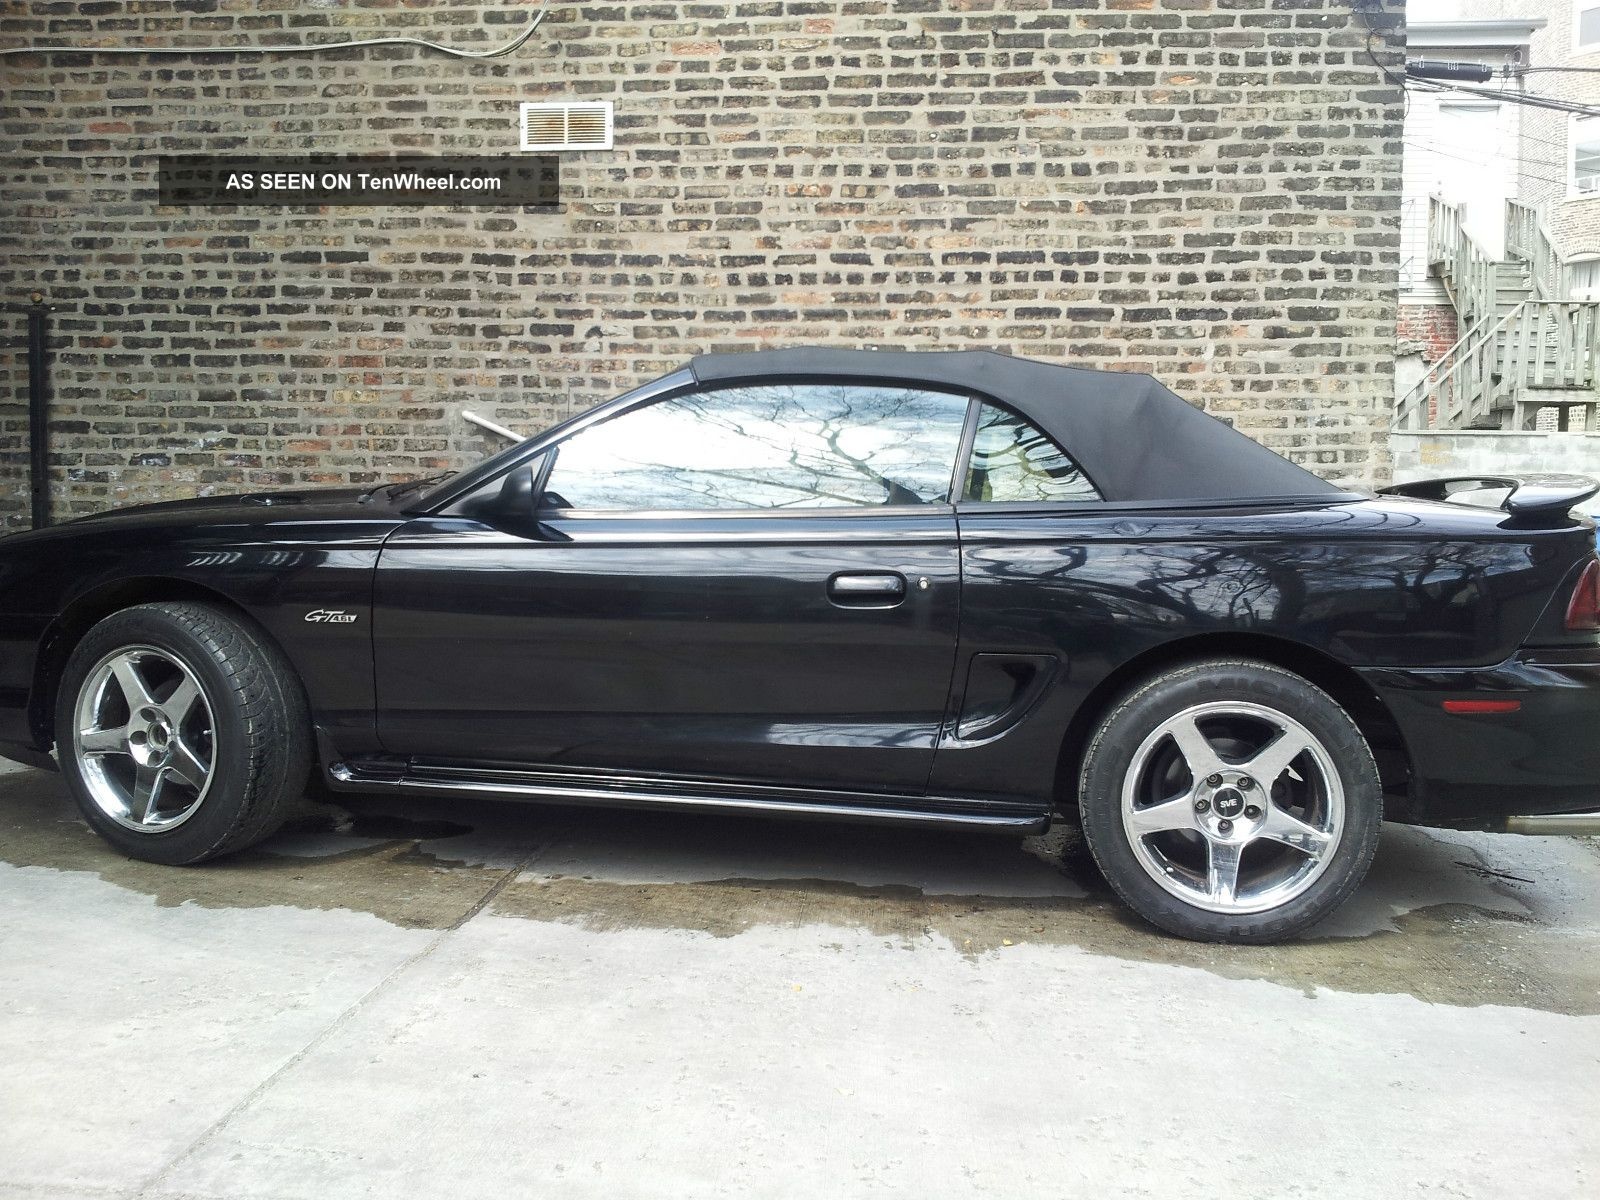 1996 Ford Mustang GT photo - 1